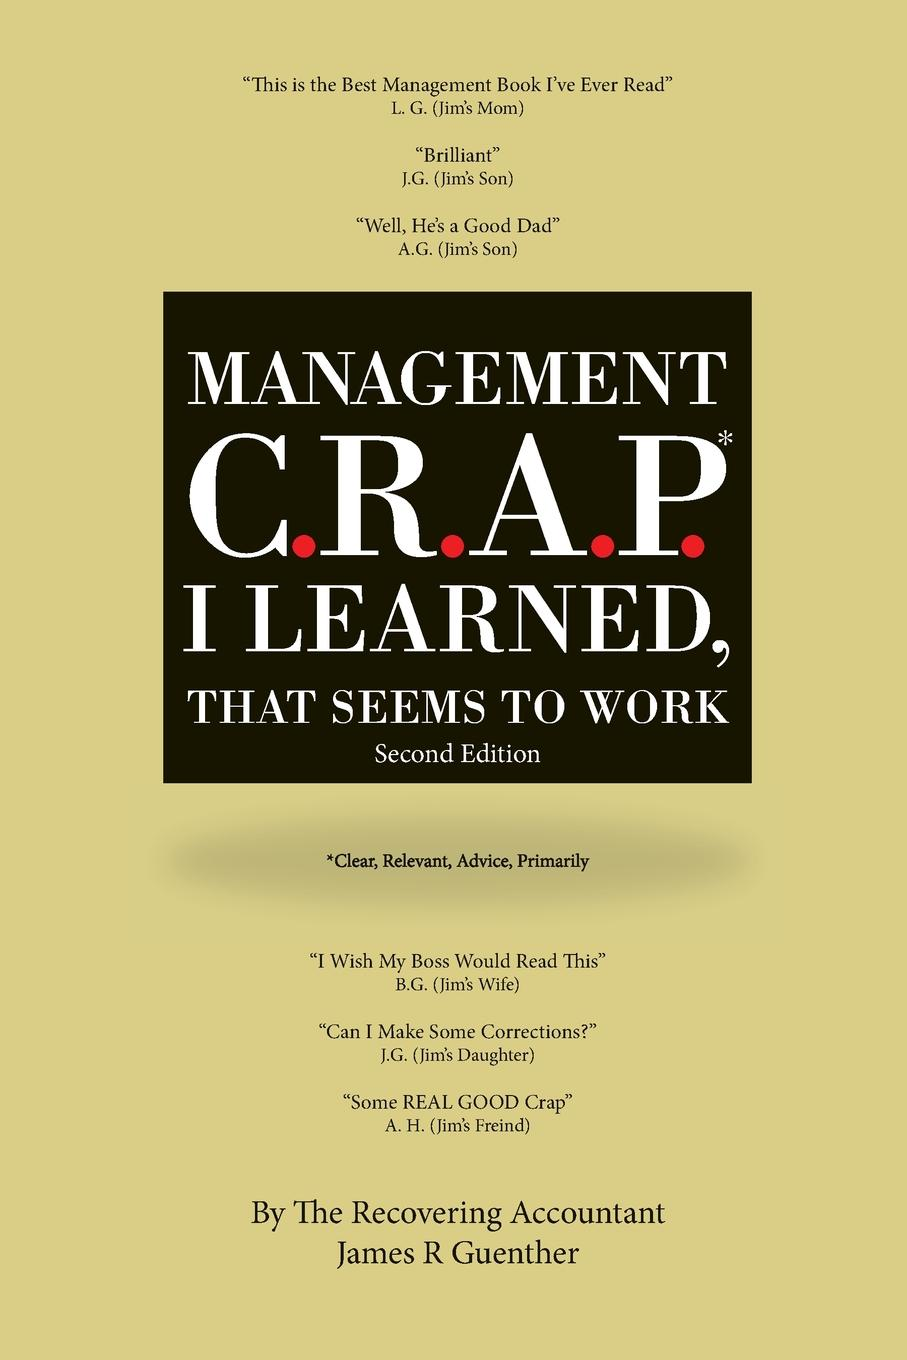 Mangement C.R.A.P. I Learned, That Seems To Work. Second Edition. More and more practical advice for managers and business owners...